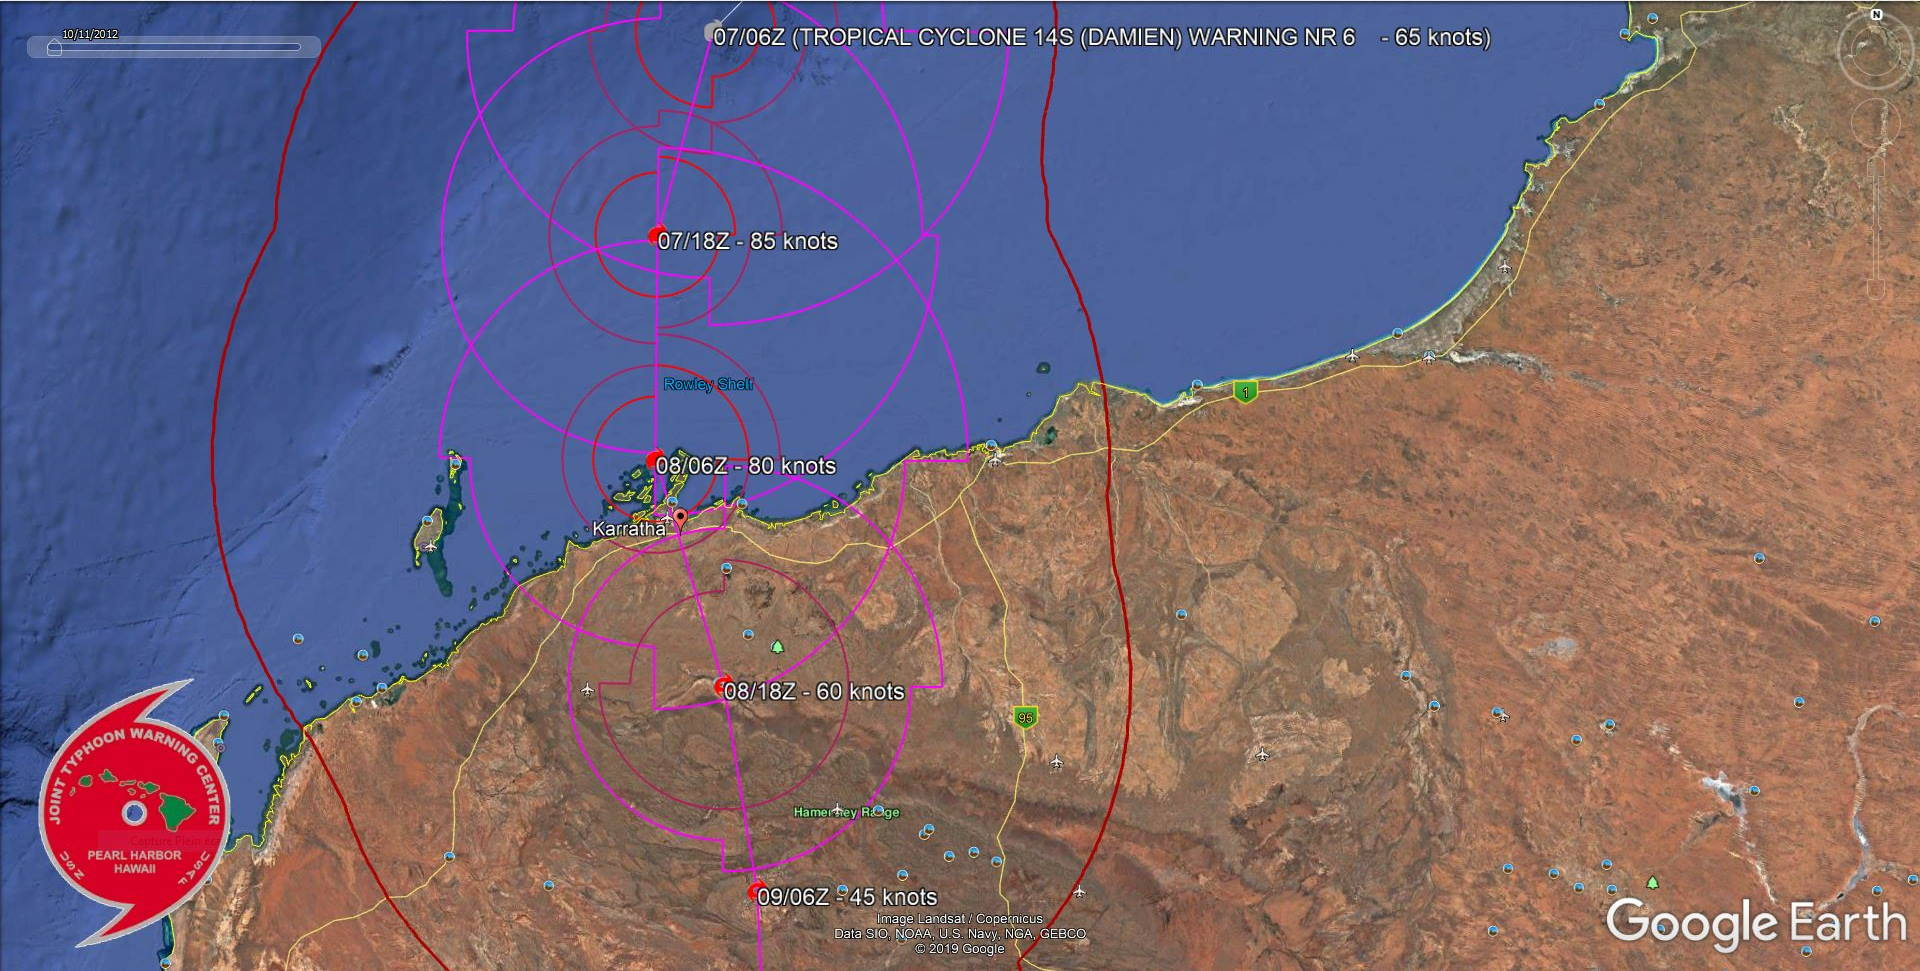 TC 14S(DAMIEN) now CAT 1 US, intensifying and bearing down on Karratha/Western Australia